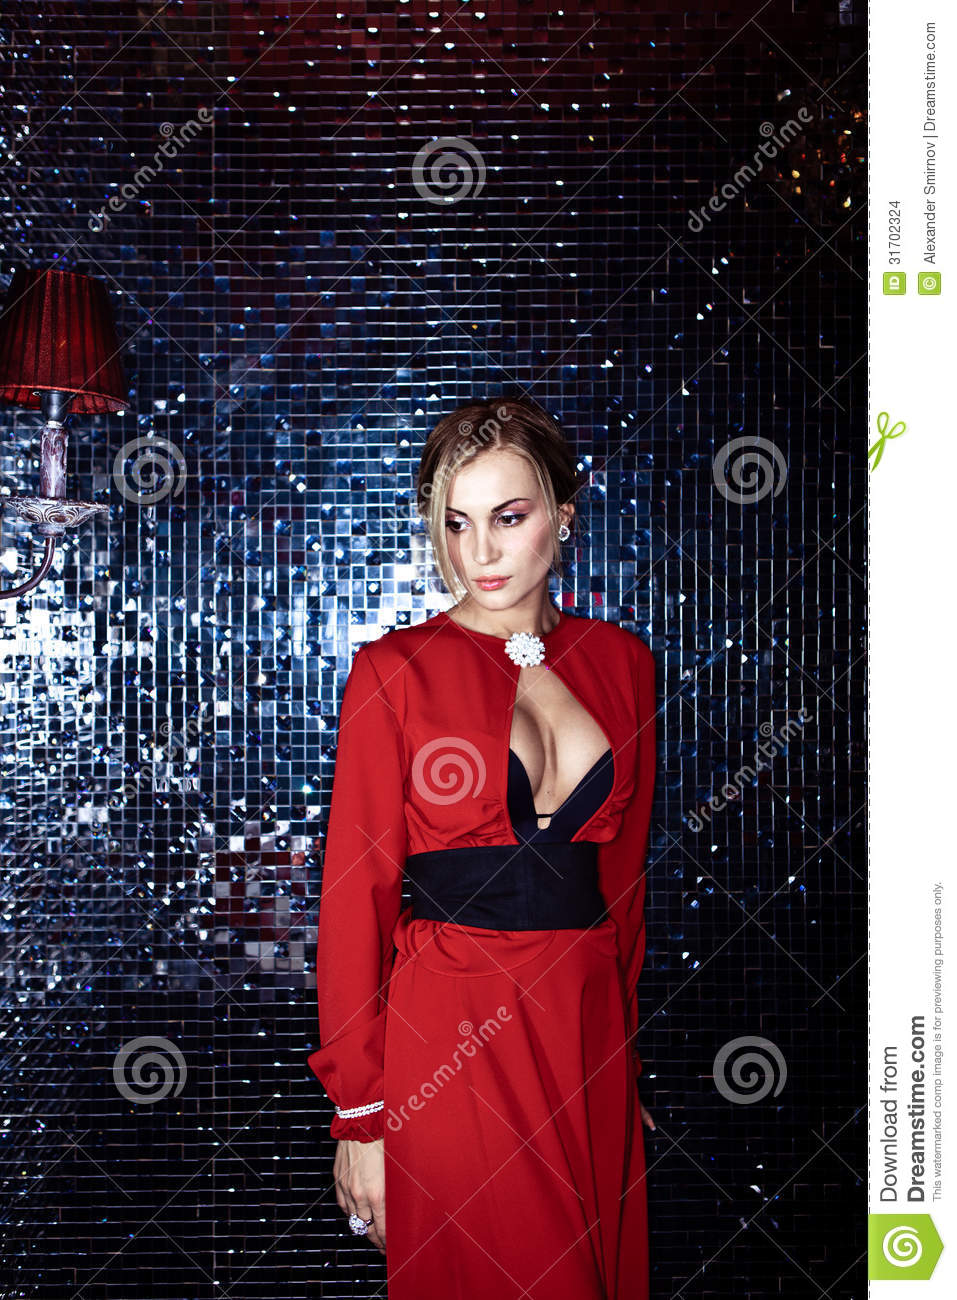 beautiful woman in a red dress stock images